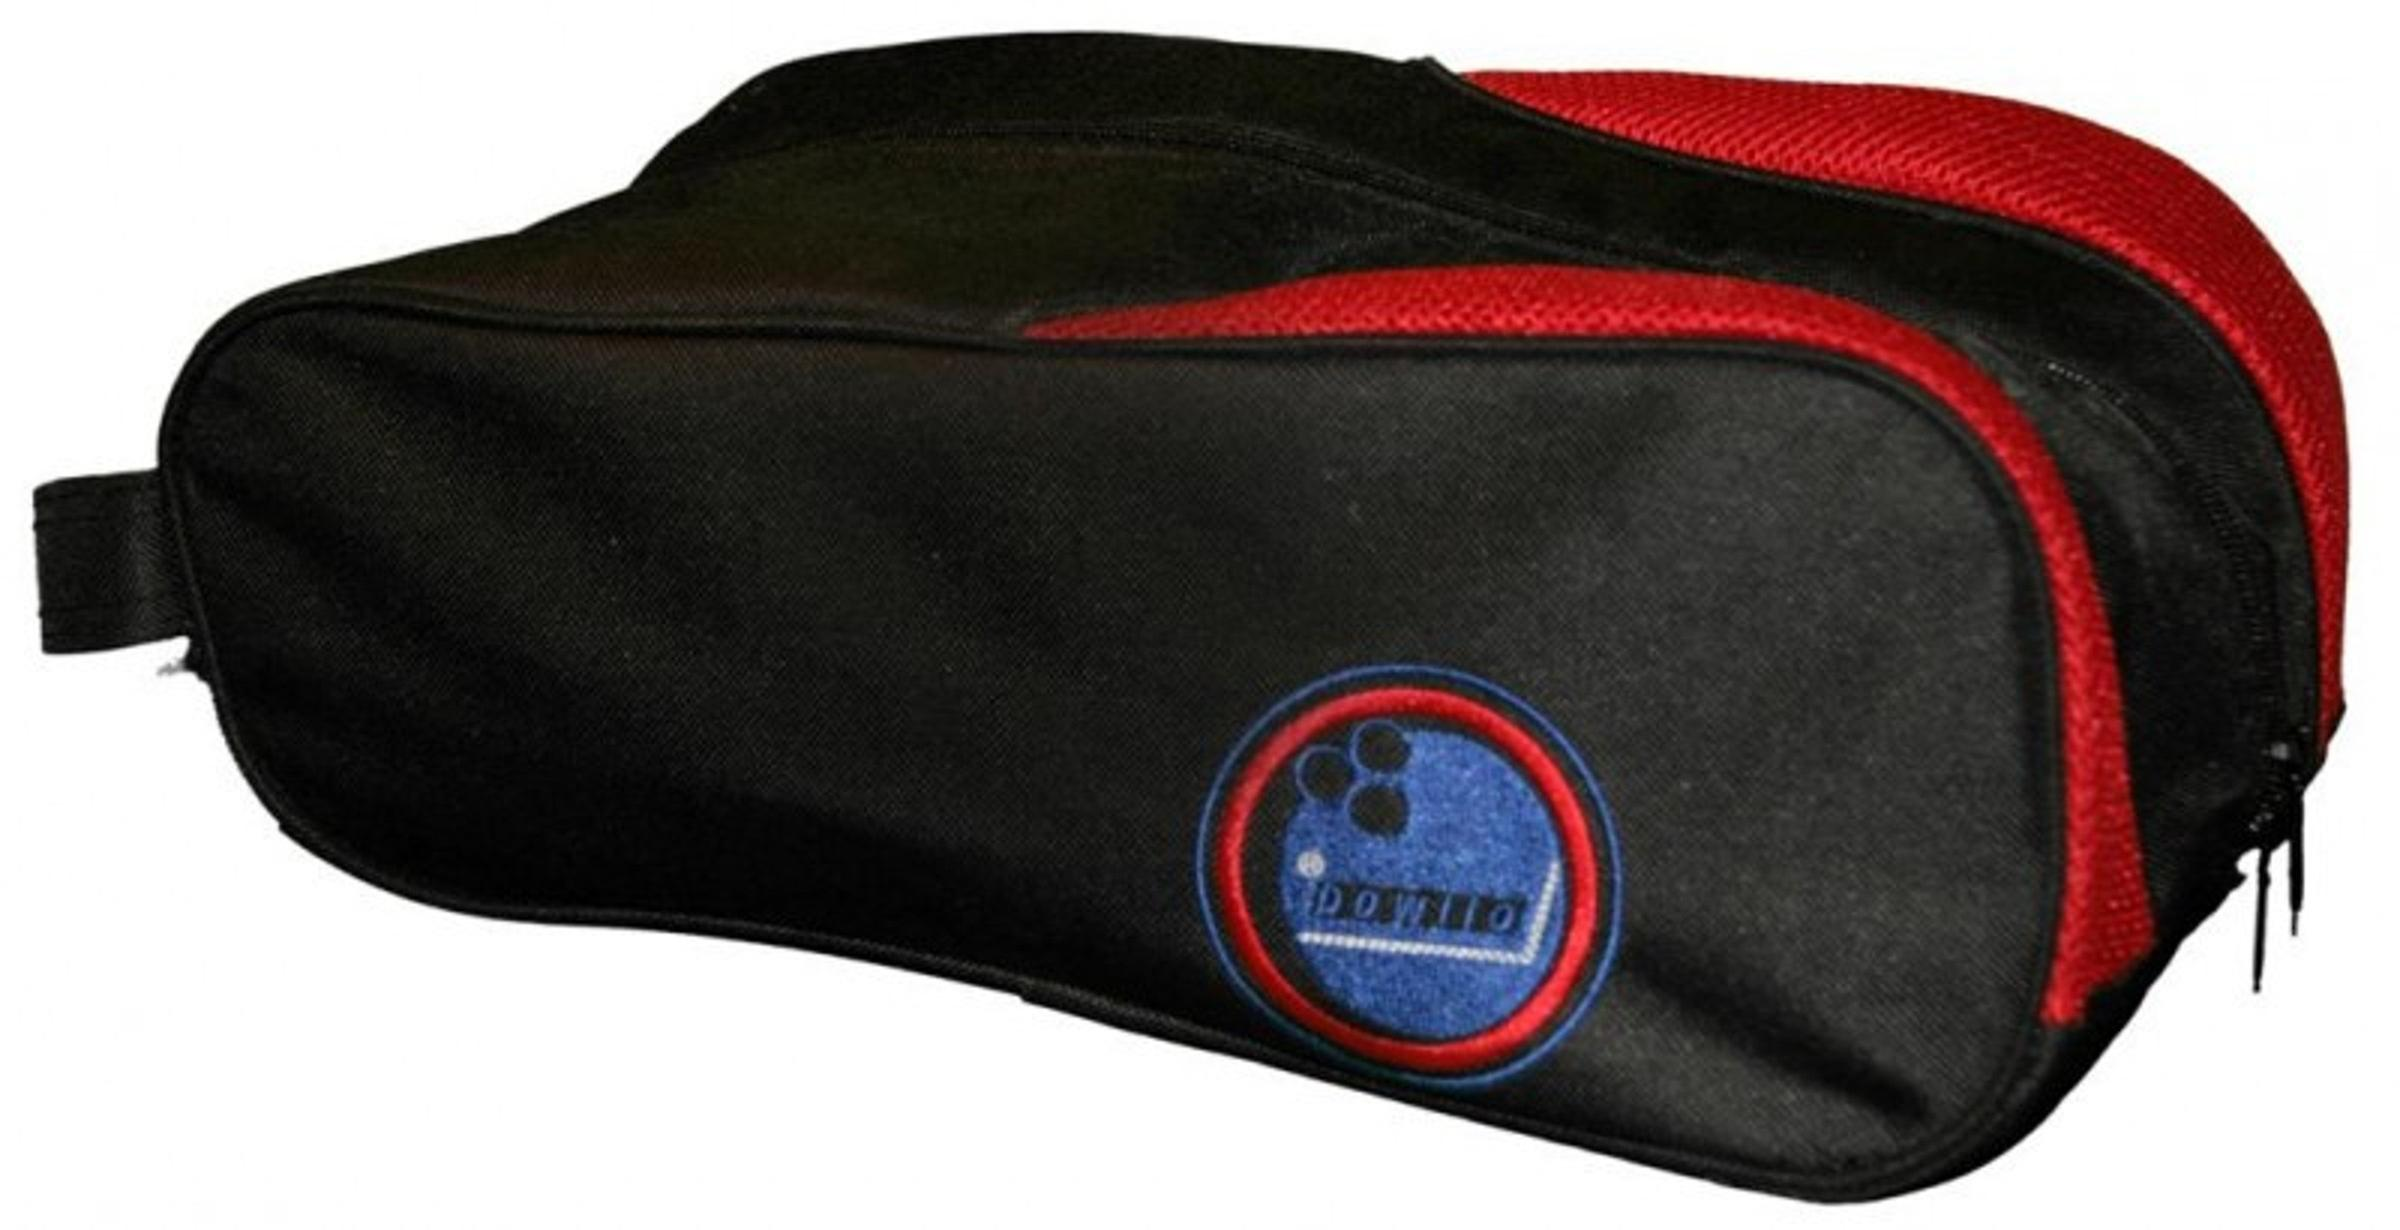 Bowling bag black red Bowling shoes and bowling accessories from Bowlio for men and women